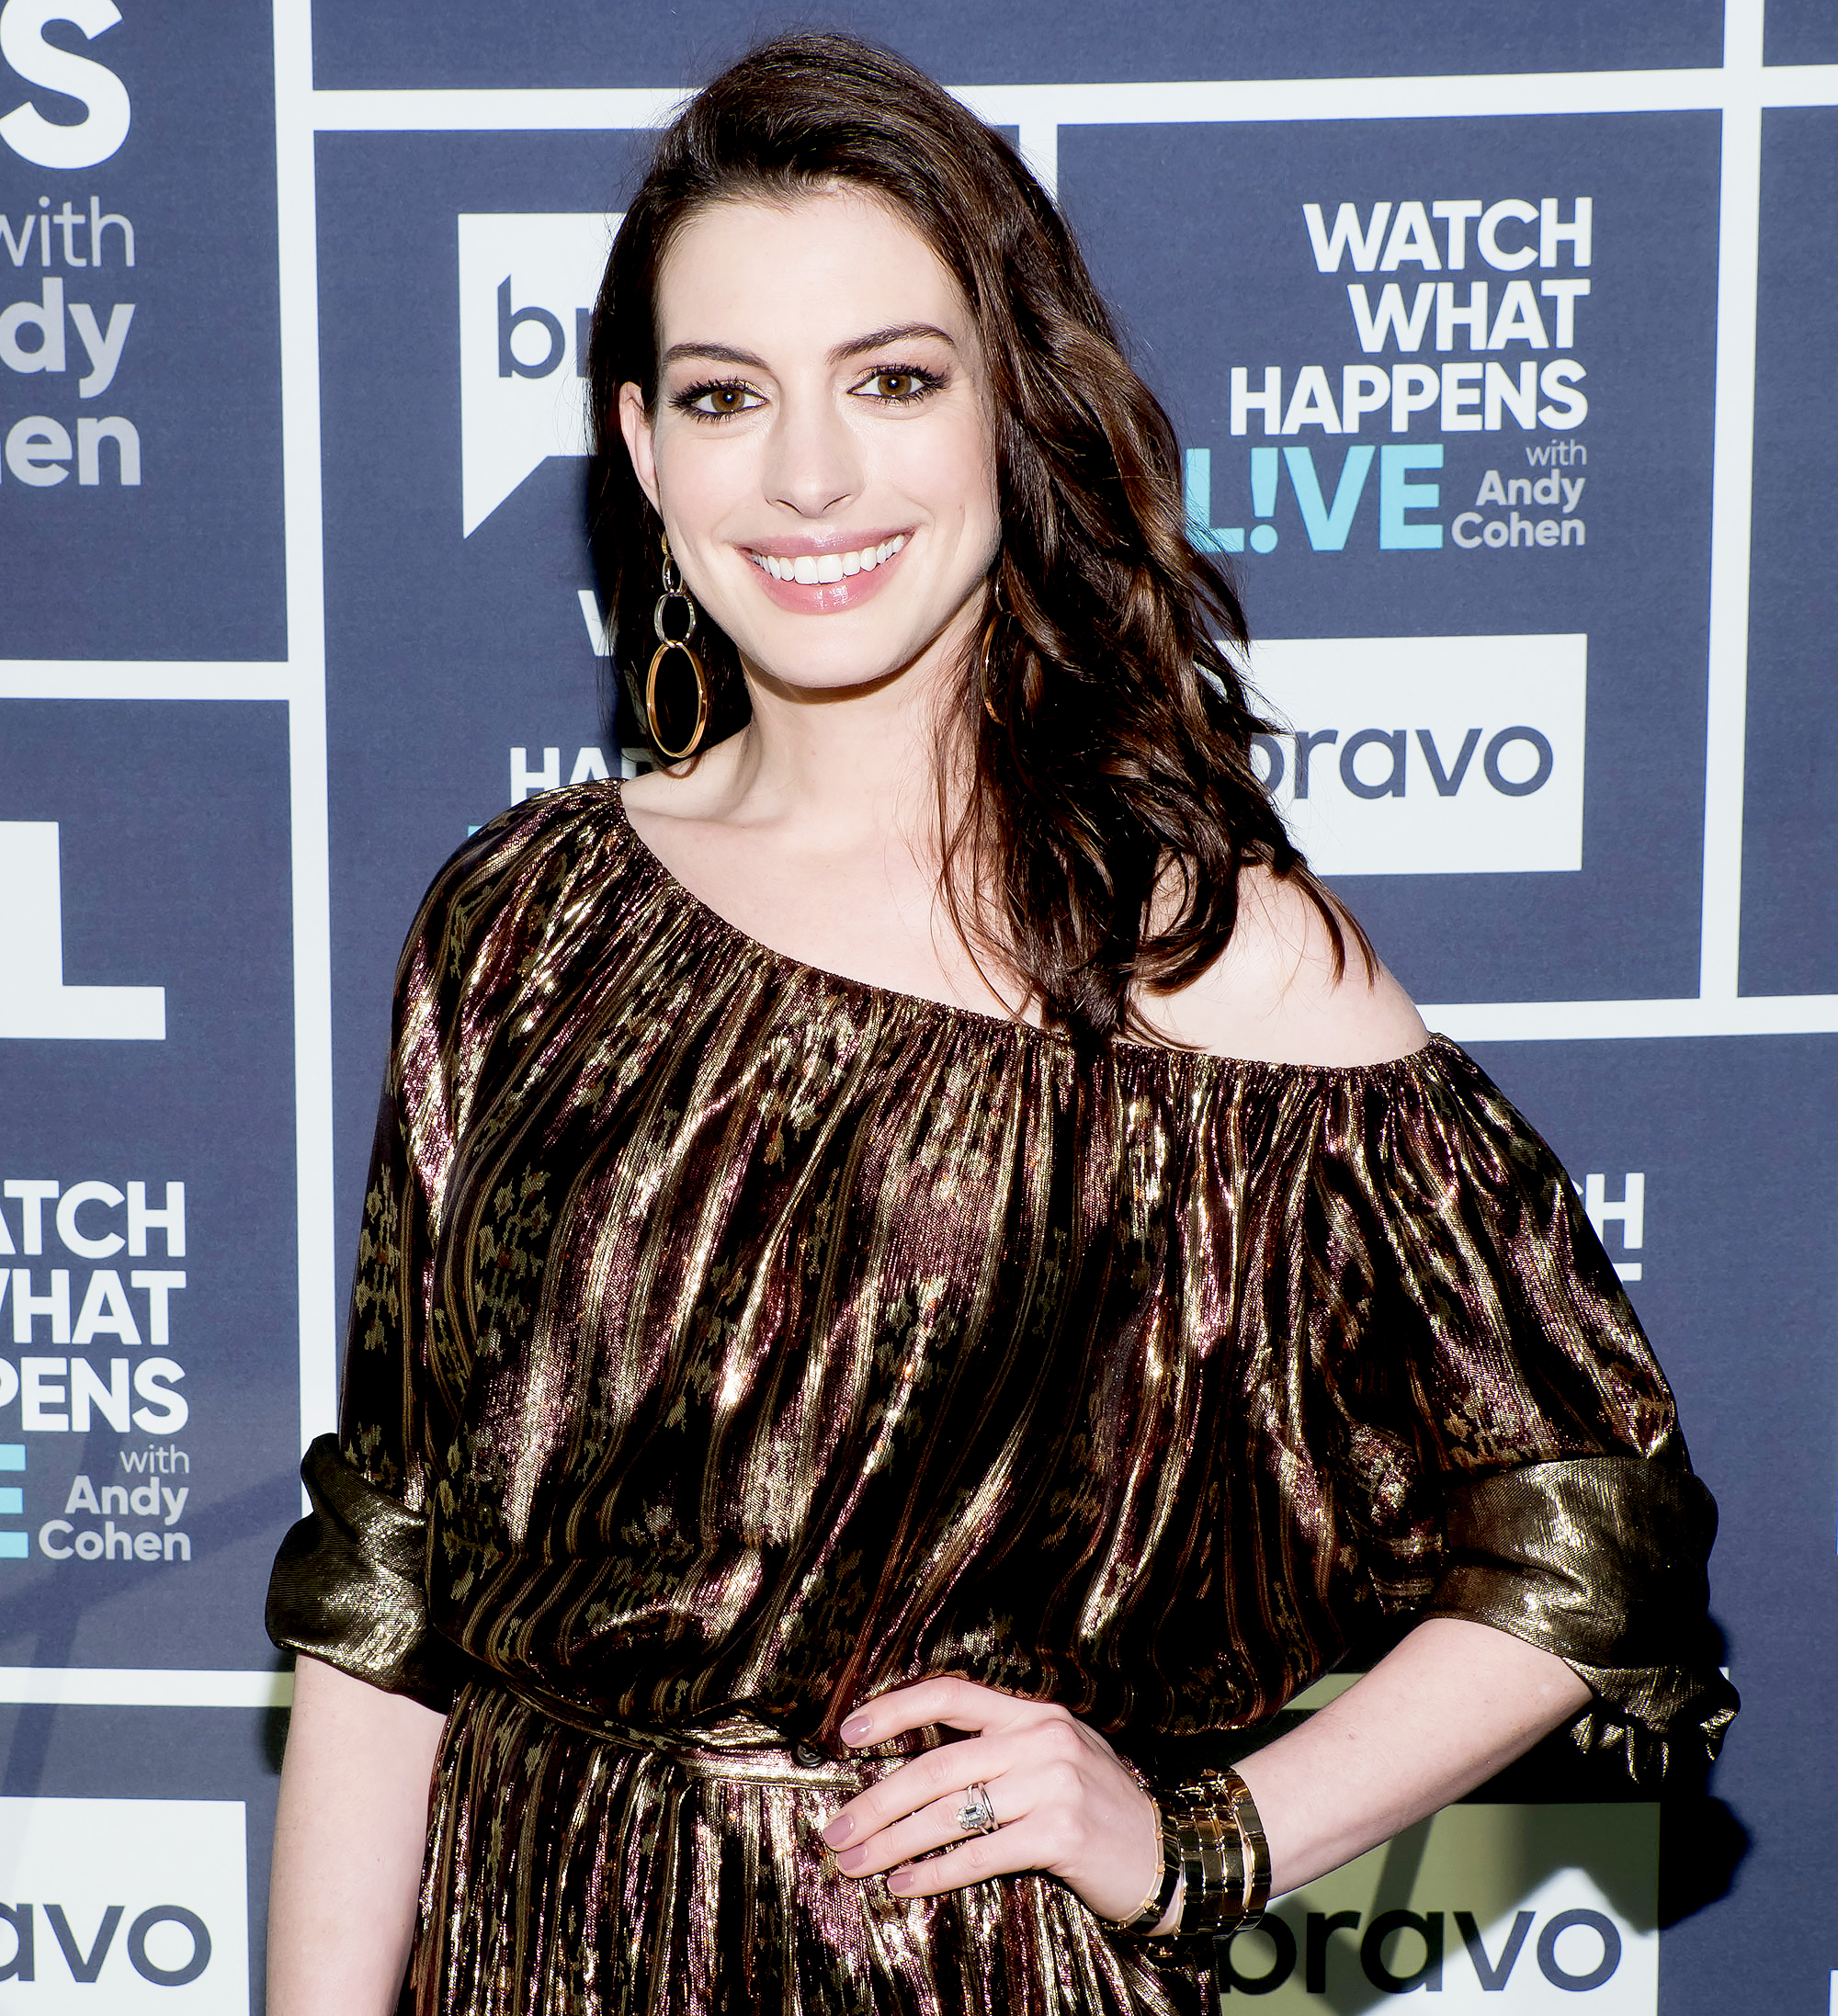 Anne Hathaway Celebrates Her 'Princess Diaries' Character